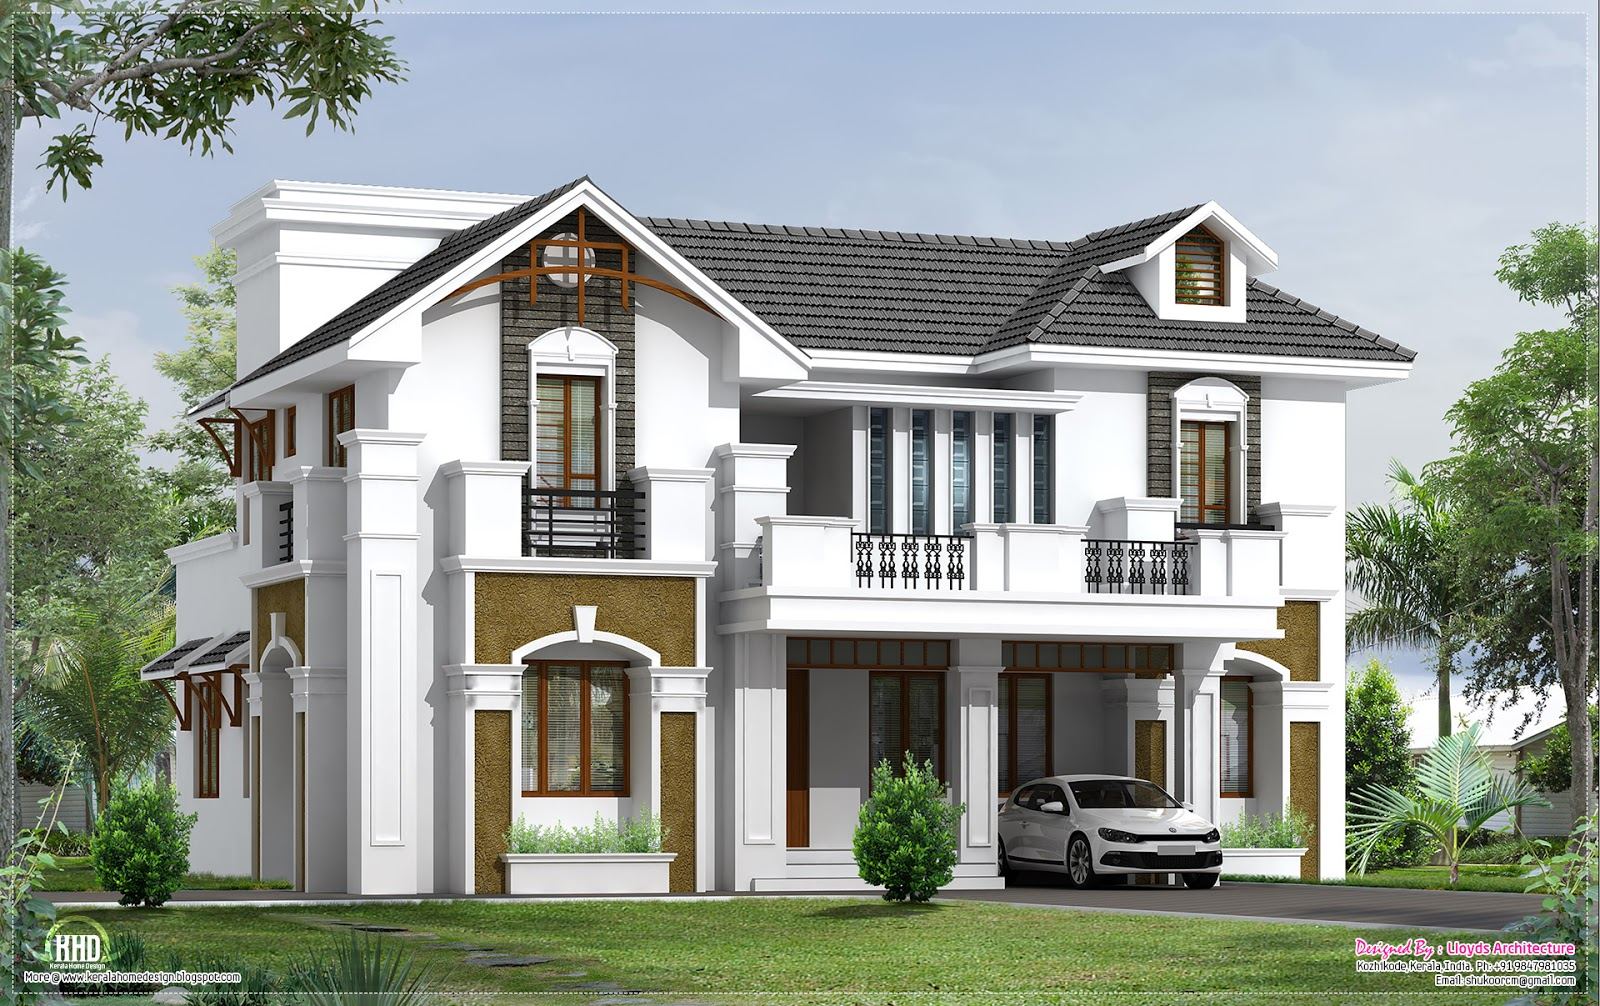 3d view of 2200 square feet villa house design plans House plan 3d view